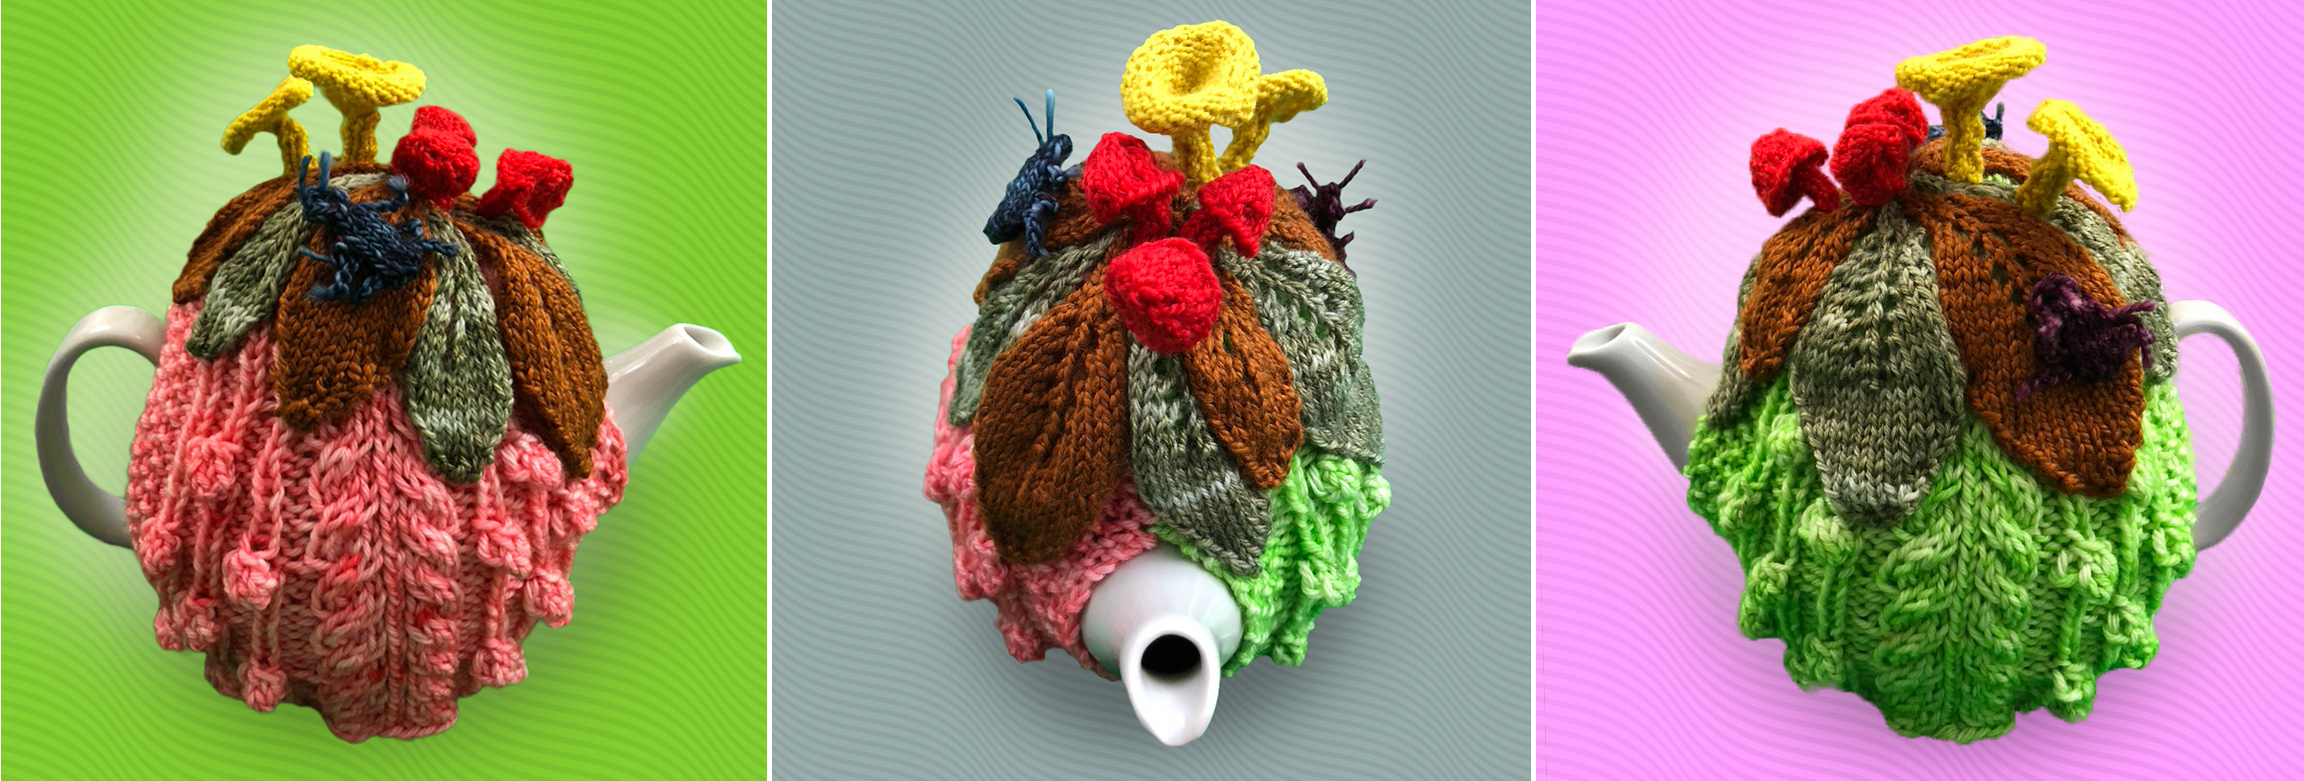 A knitted teapot, with knitted leaves, mushrooms, and bugs on top